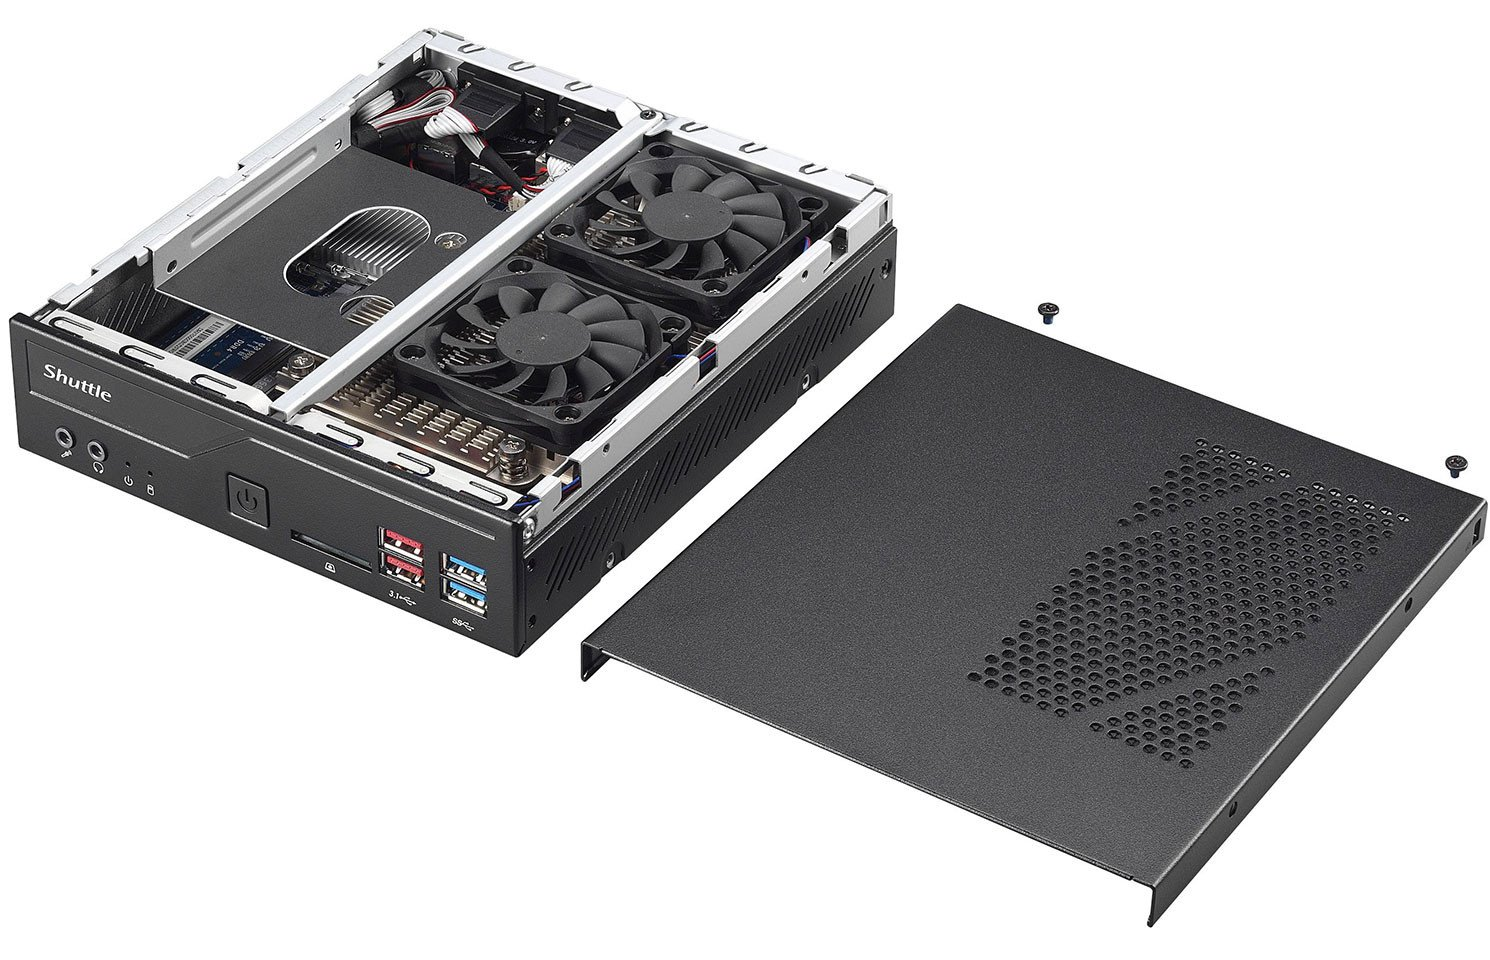 Image 3 : Le mini PC Shuttle XPC DH370 passe aux CPU Intel 8e Gen